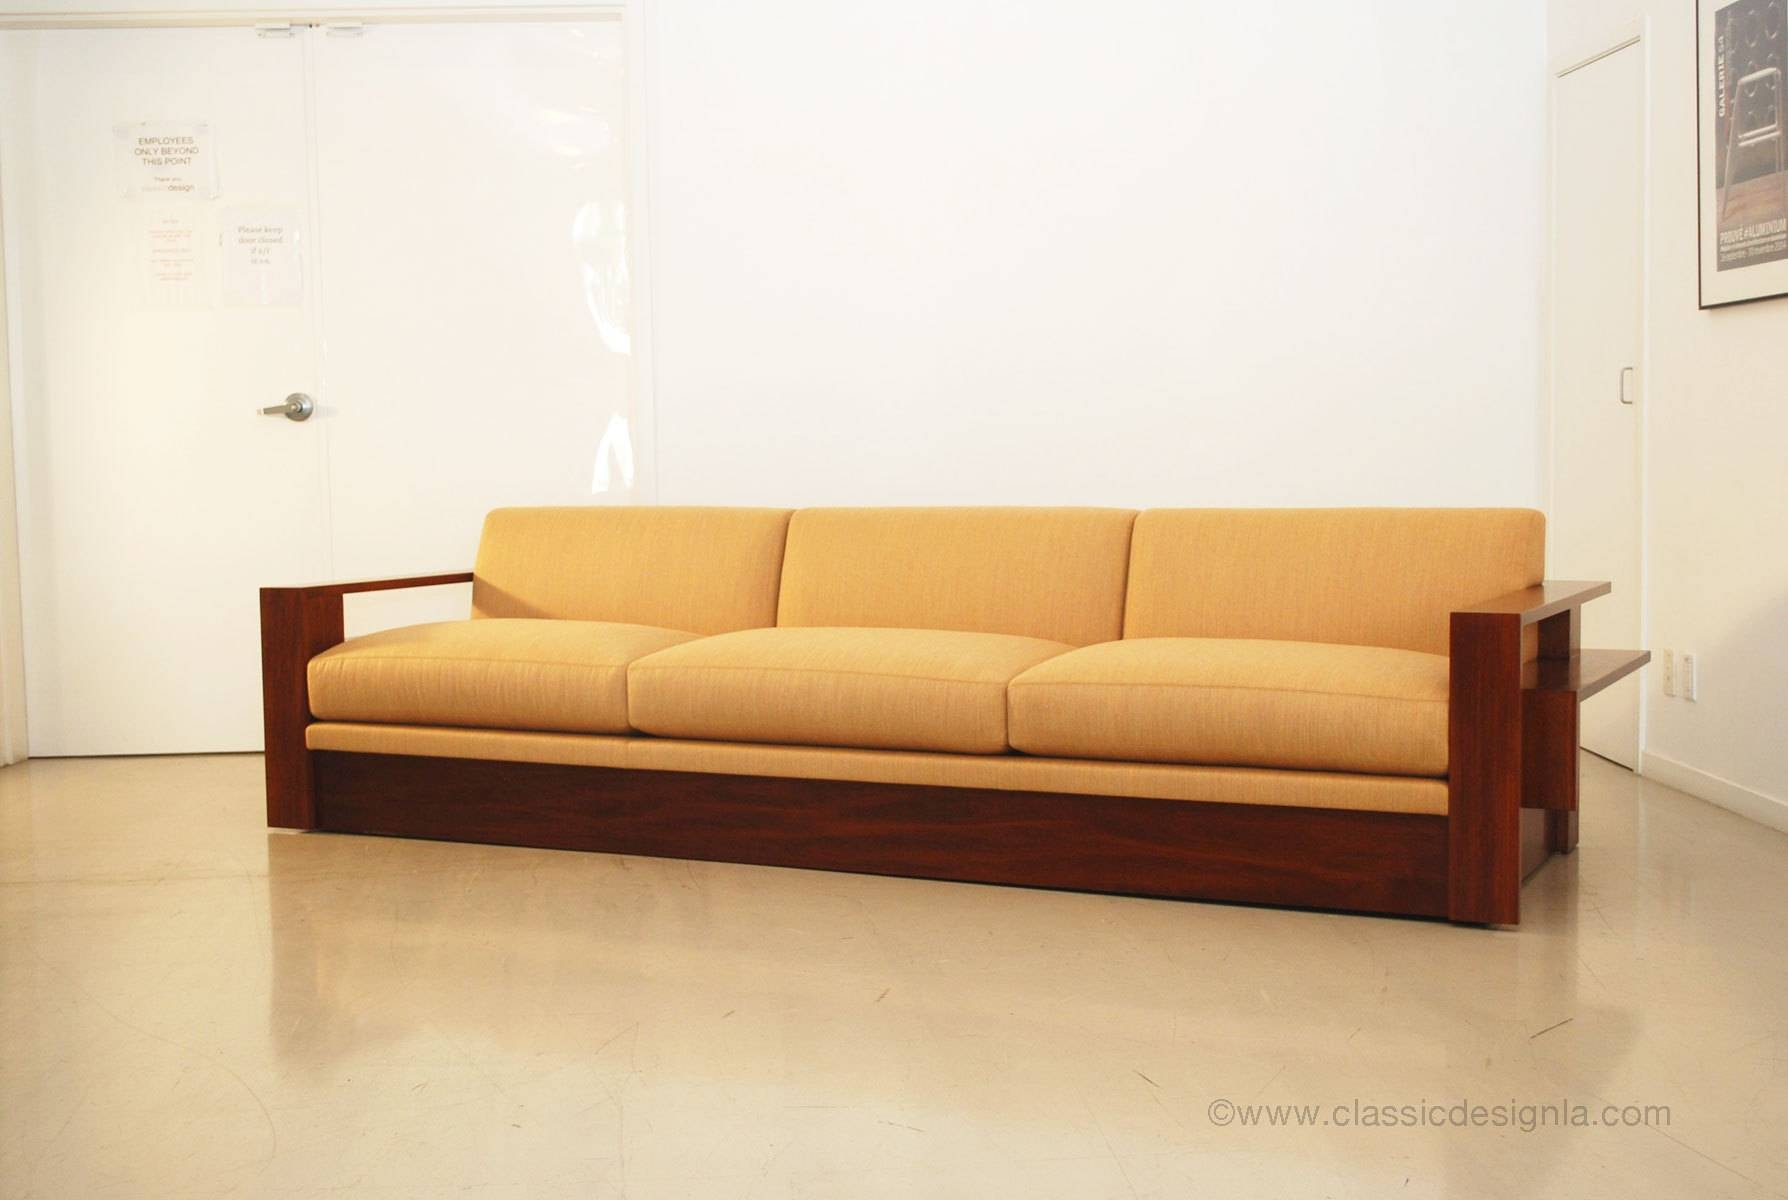 Sofas Center : Frightening Wood Frame Sofa Picture Concept New Mod throughout Mod Sofas (Image 16 of 30)